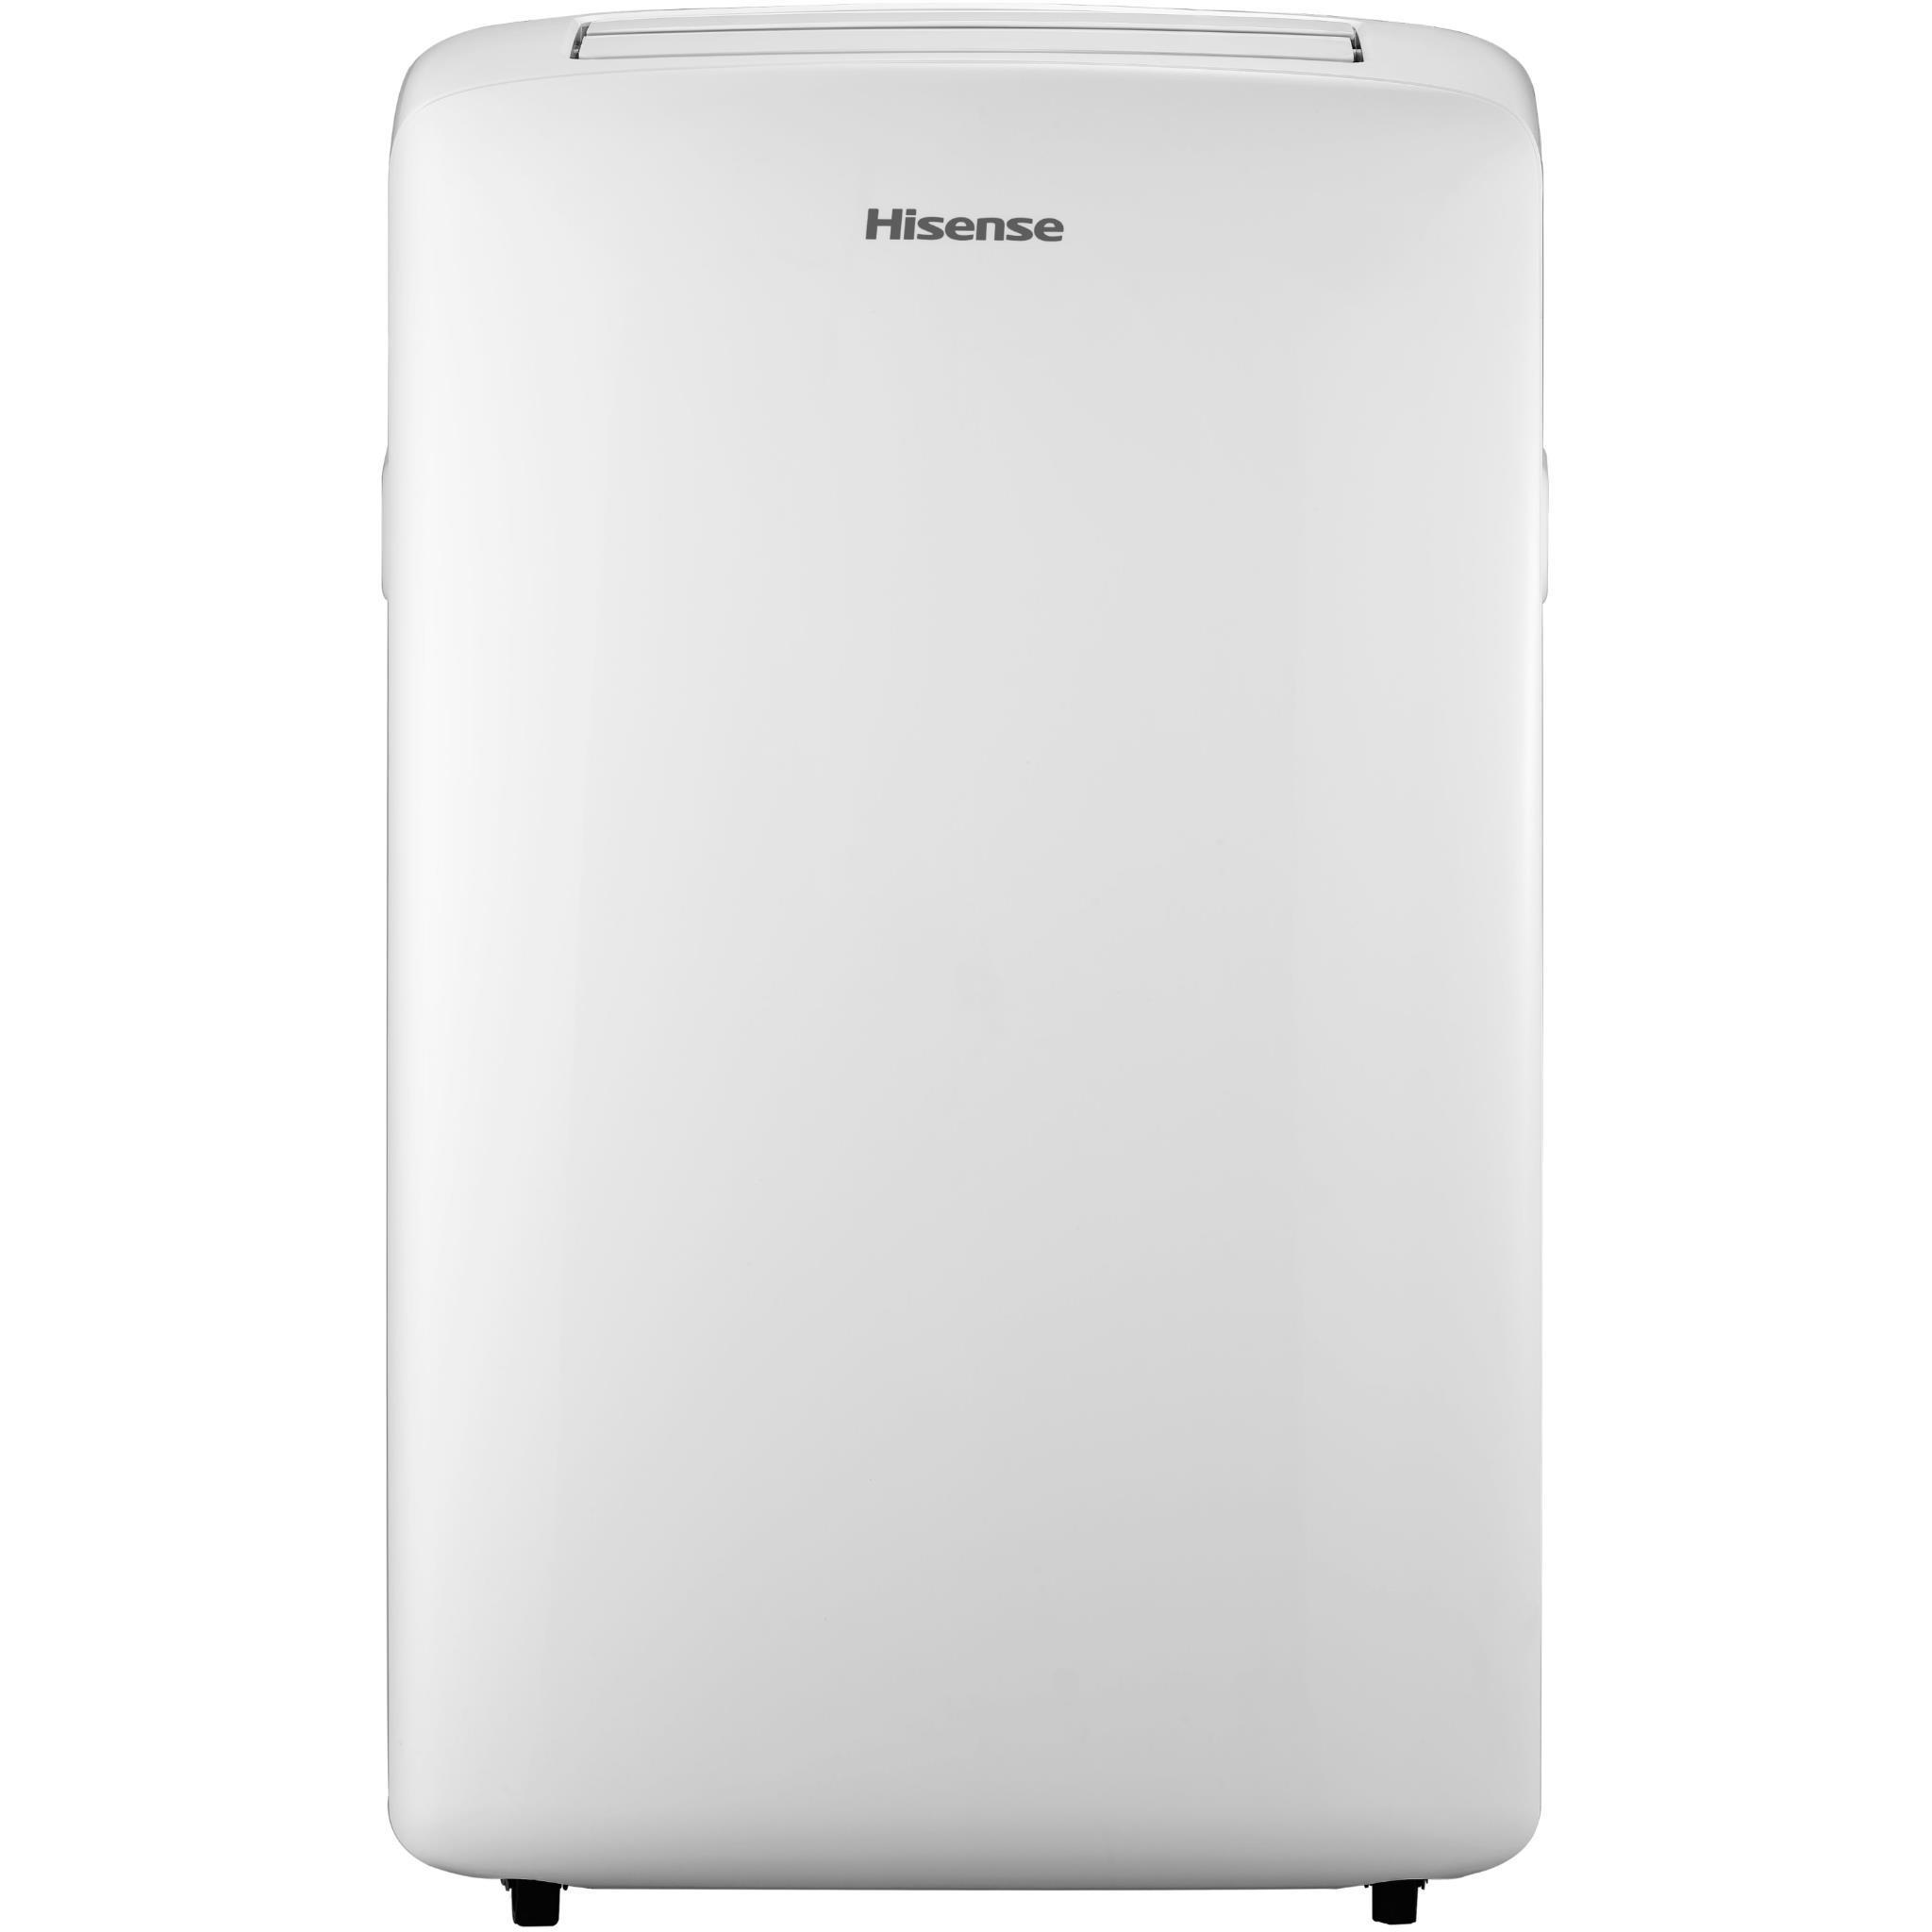 Hisense HPA27C 2.7kW Cooling Only Portable Air Conditioner